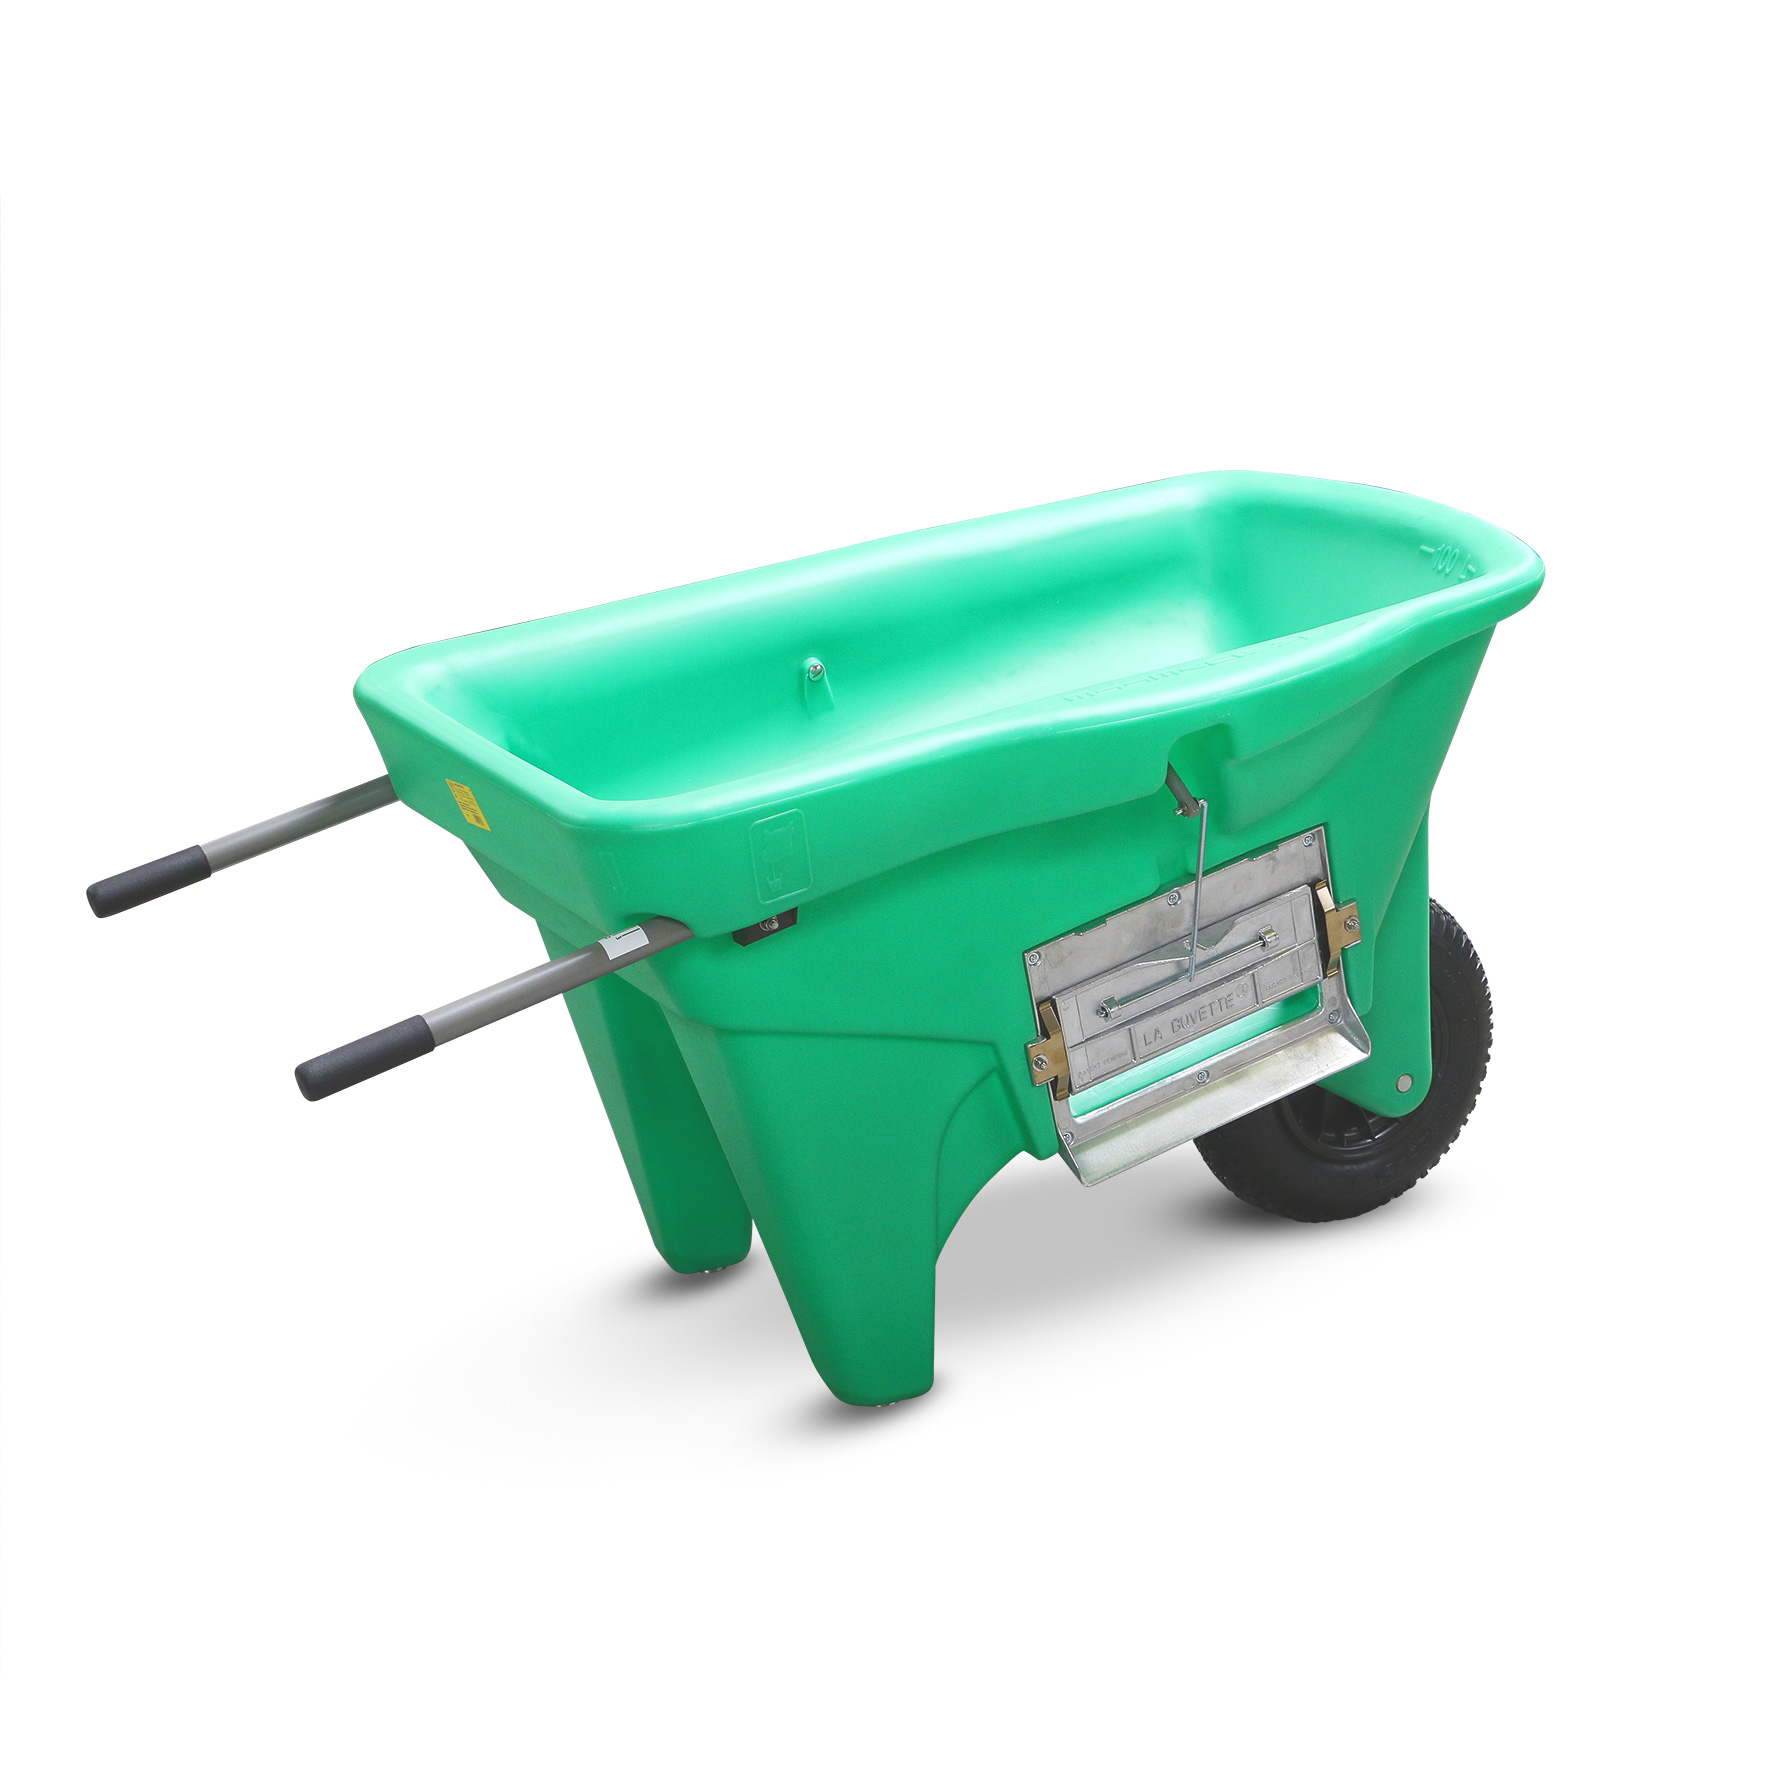 FEEDER WHEELBARROW